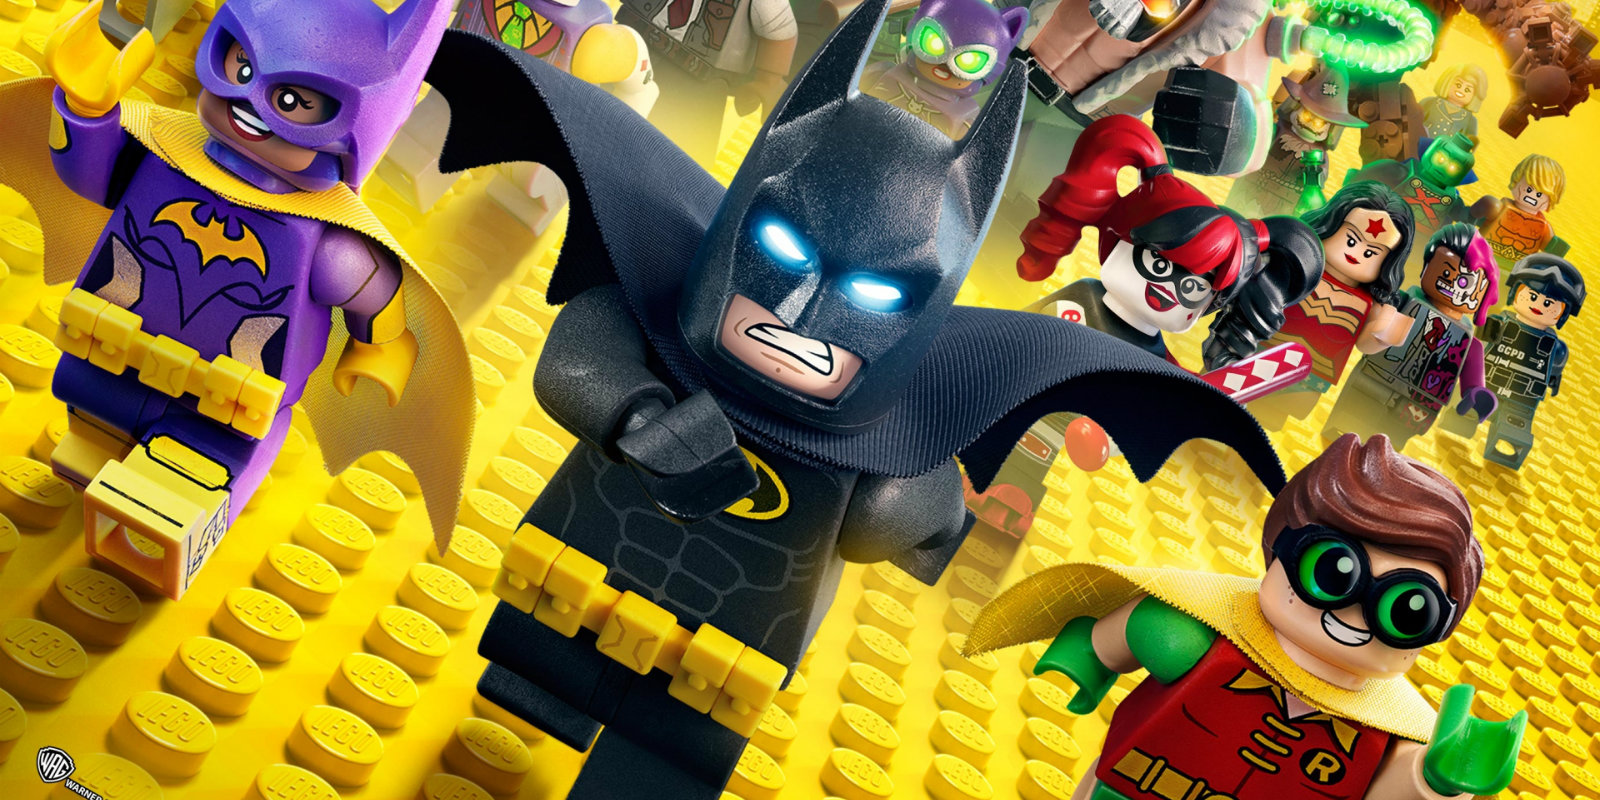 Lego Batman Movie Flopped: Has DC Over extended Batman?